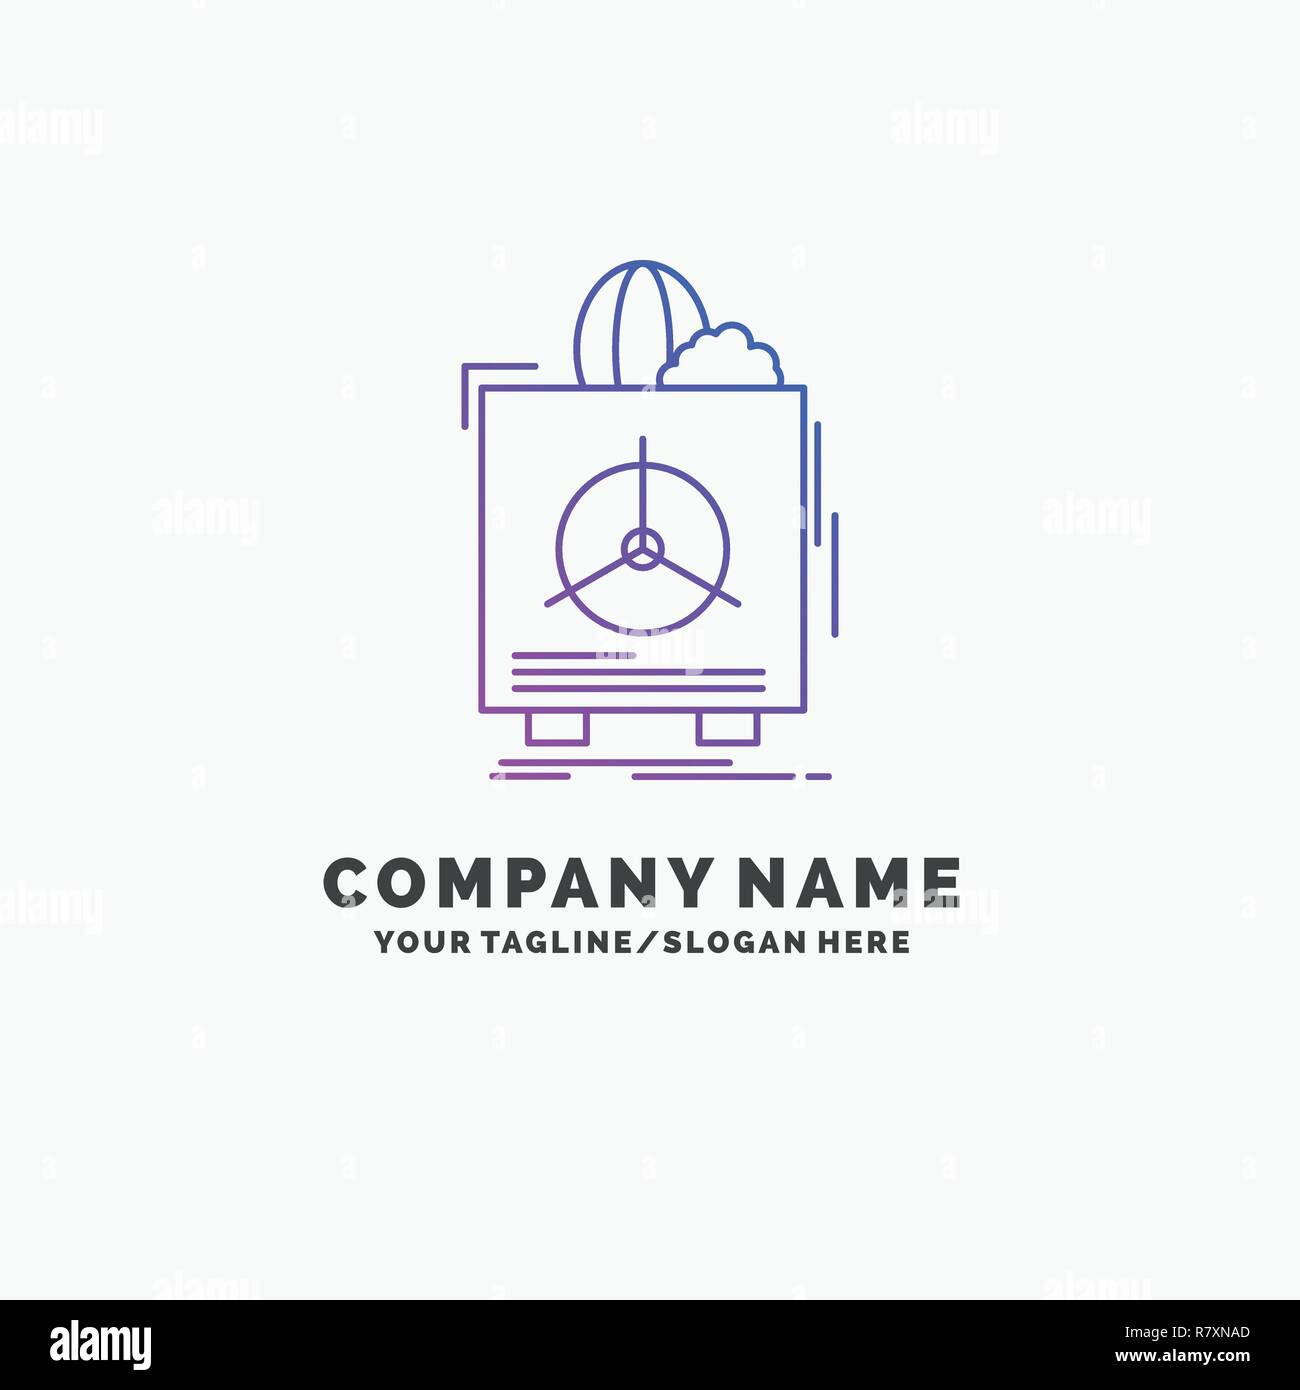 insurance, Fragile, product, warranty, health Purple Business Logo Template. Place for Tagline - Stock Vector